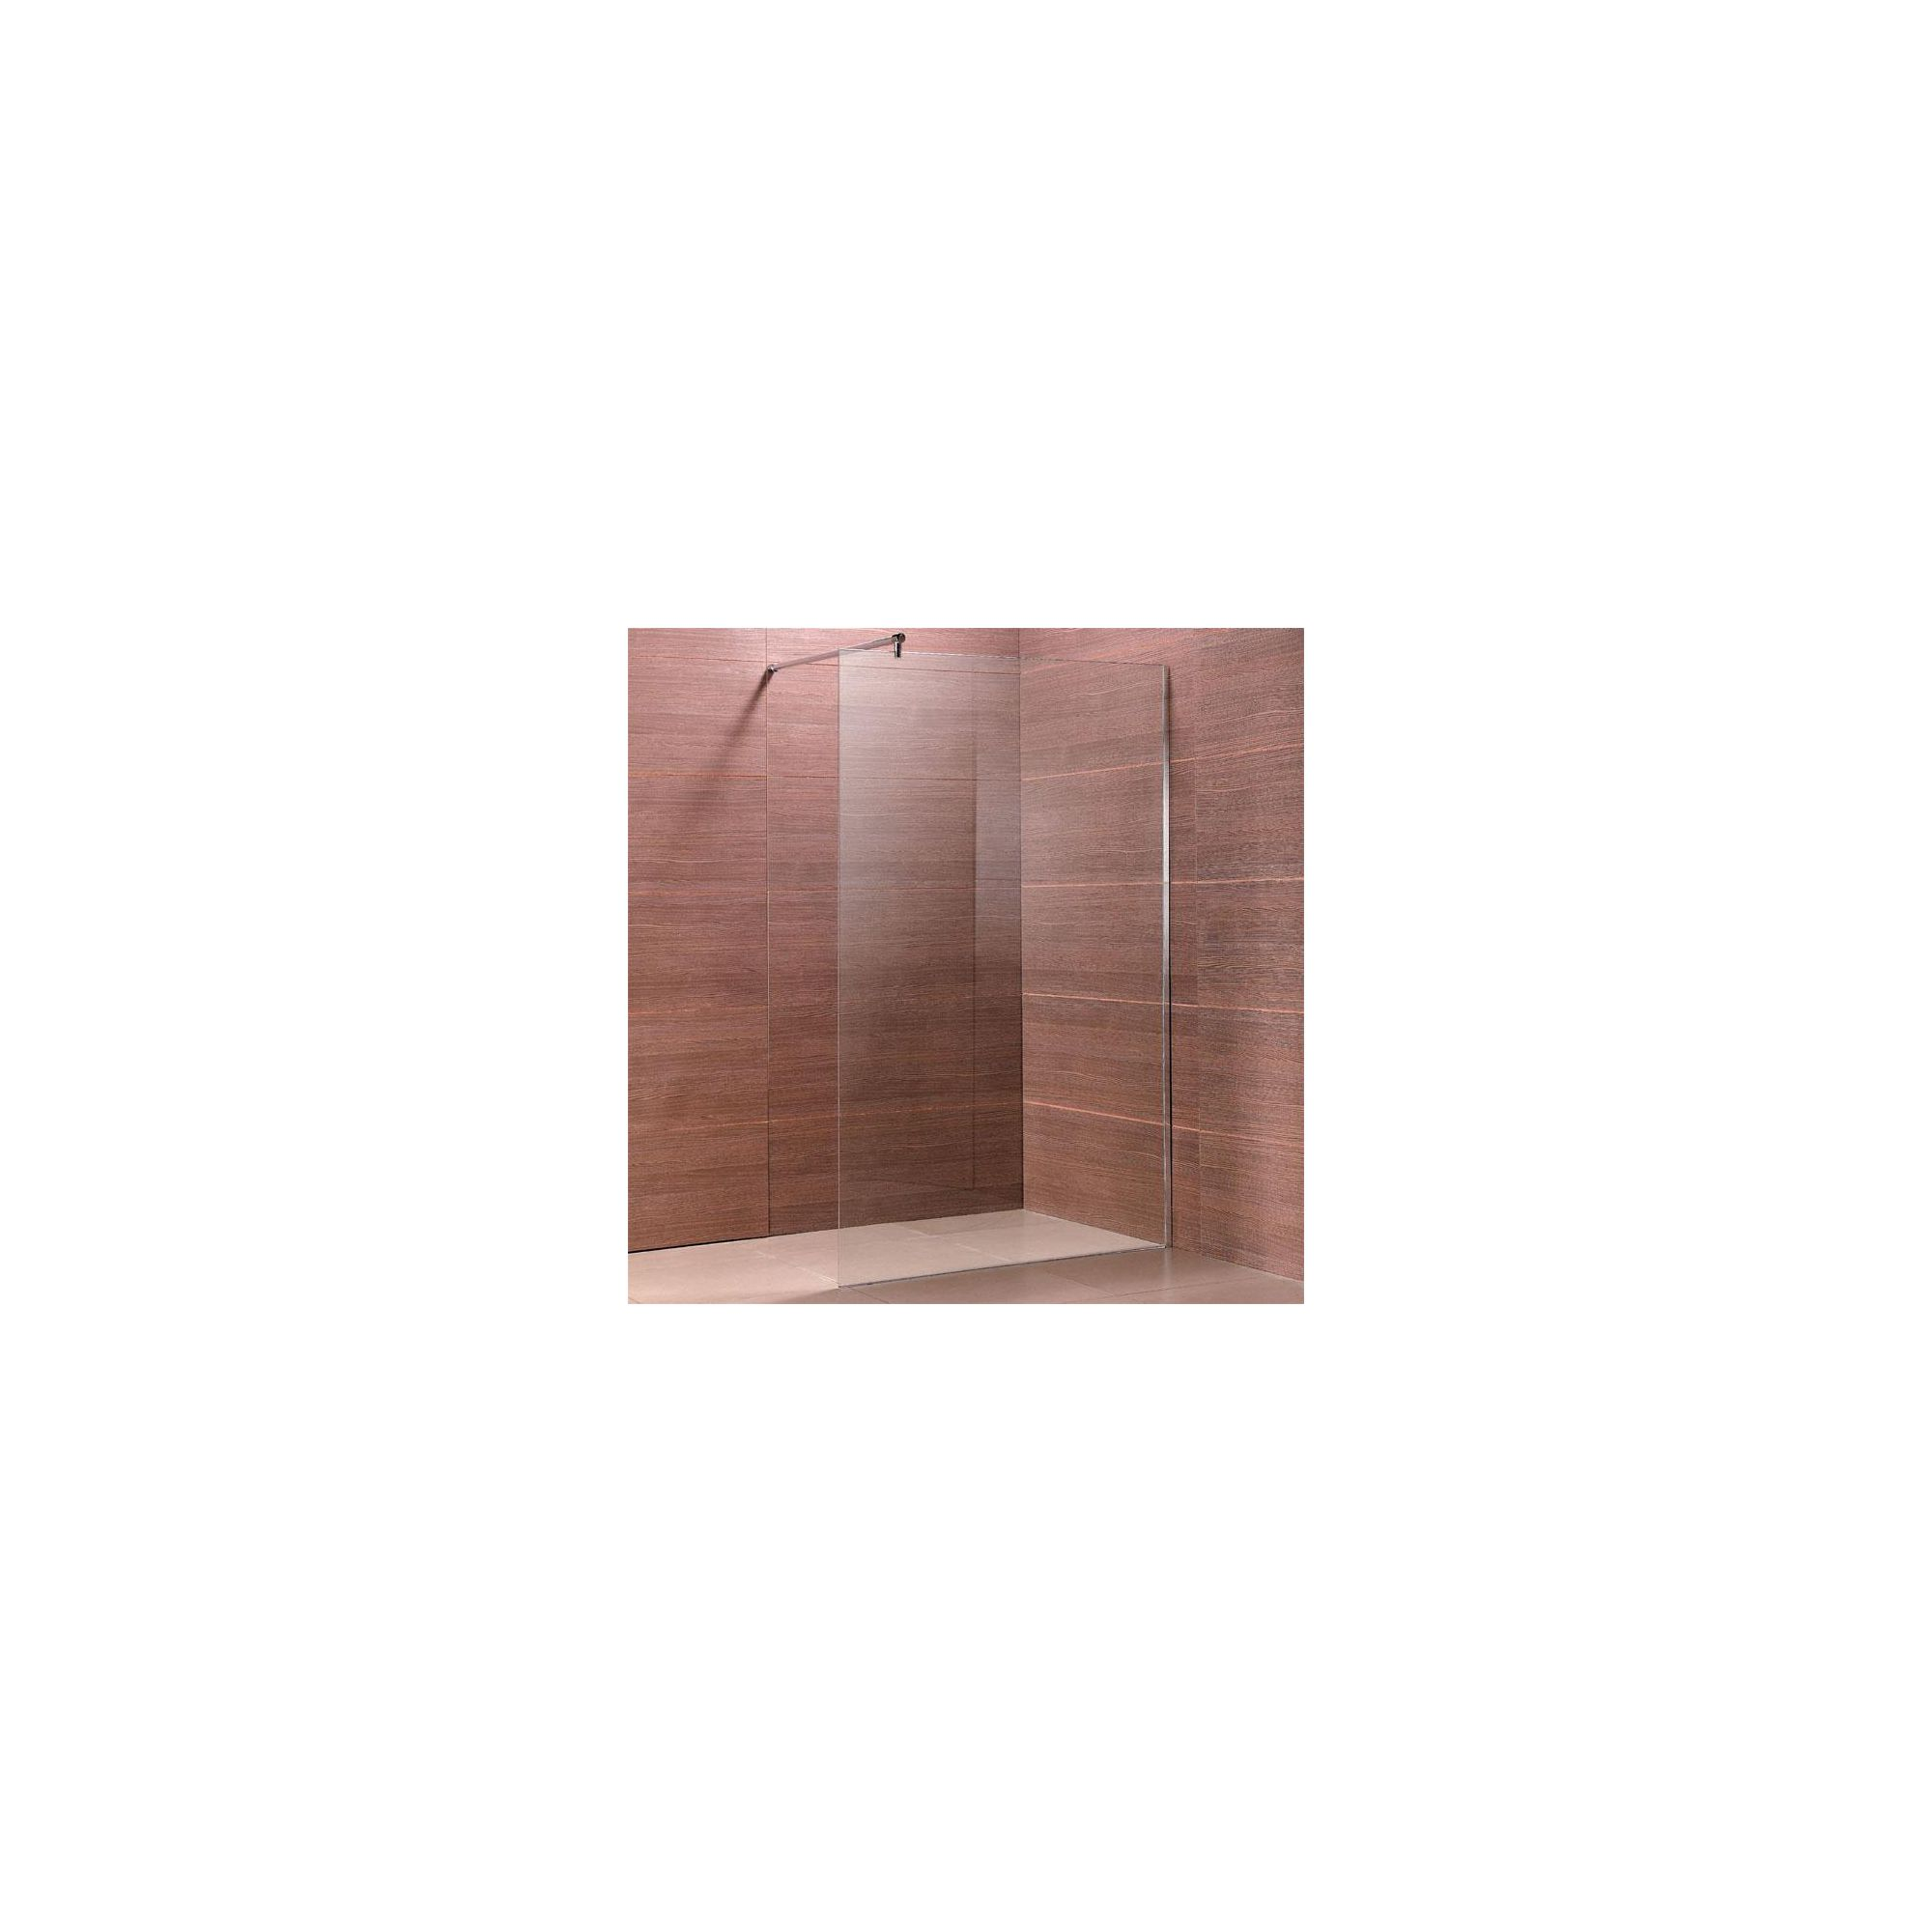 Duchy Premium Wet Room Glass Shower Panel, 1100mm x 900mm, 8mm Glass, Low Profile Tray at Tesco Direct